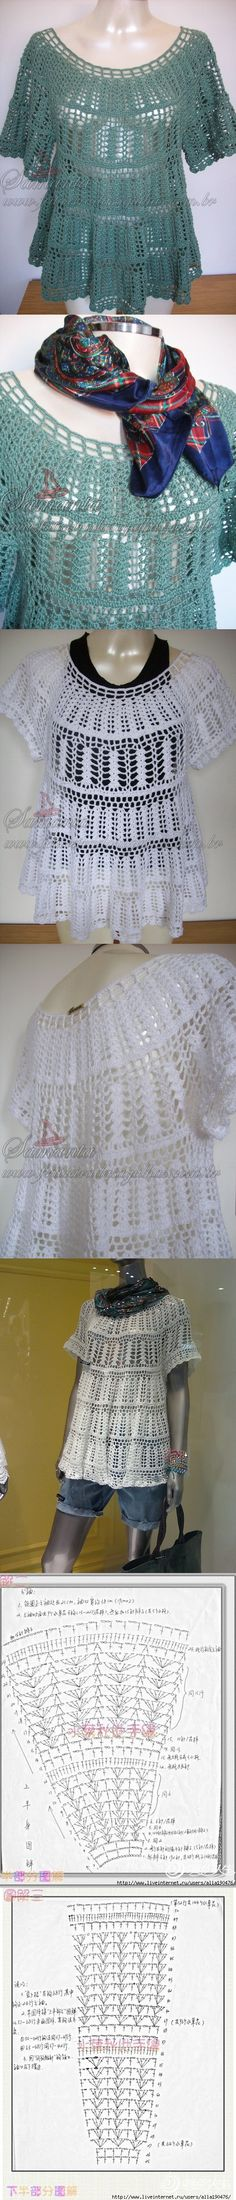 #Crochet tunic! perfect! (diagrams) crochet jacket #2dayslook #crochetfashionjacket www.2dayslook.com